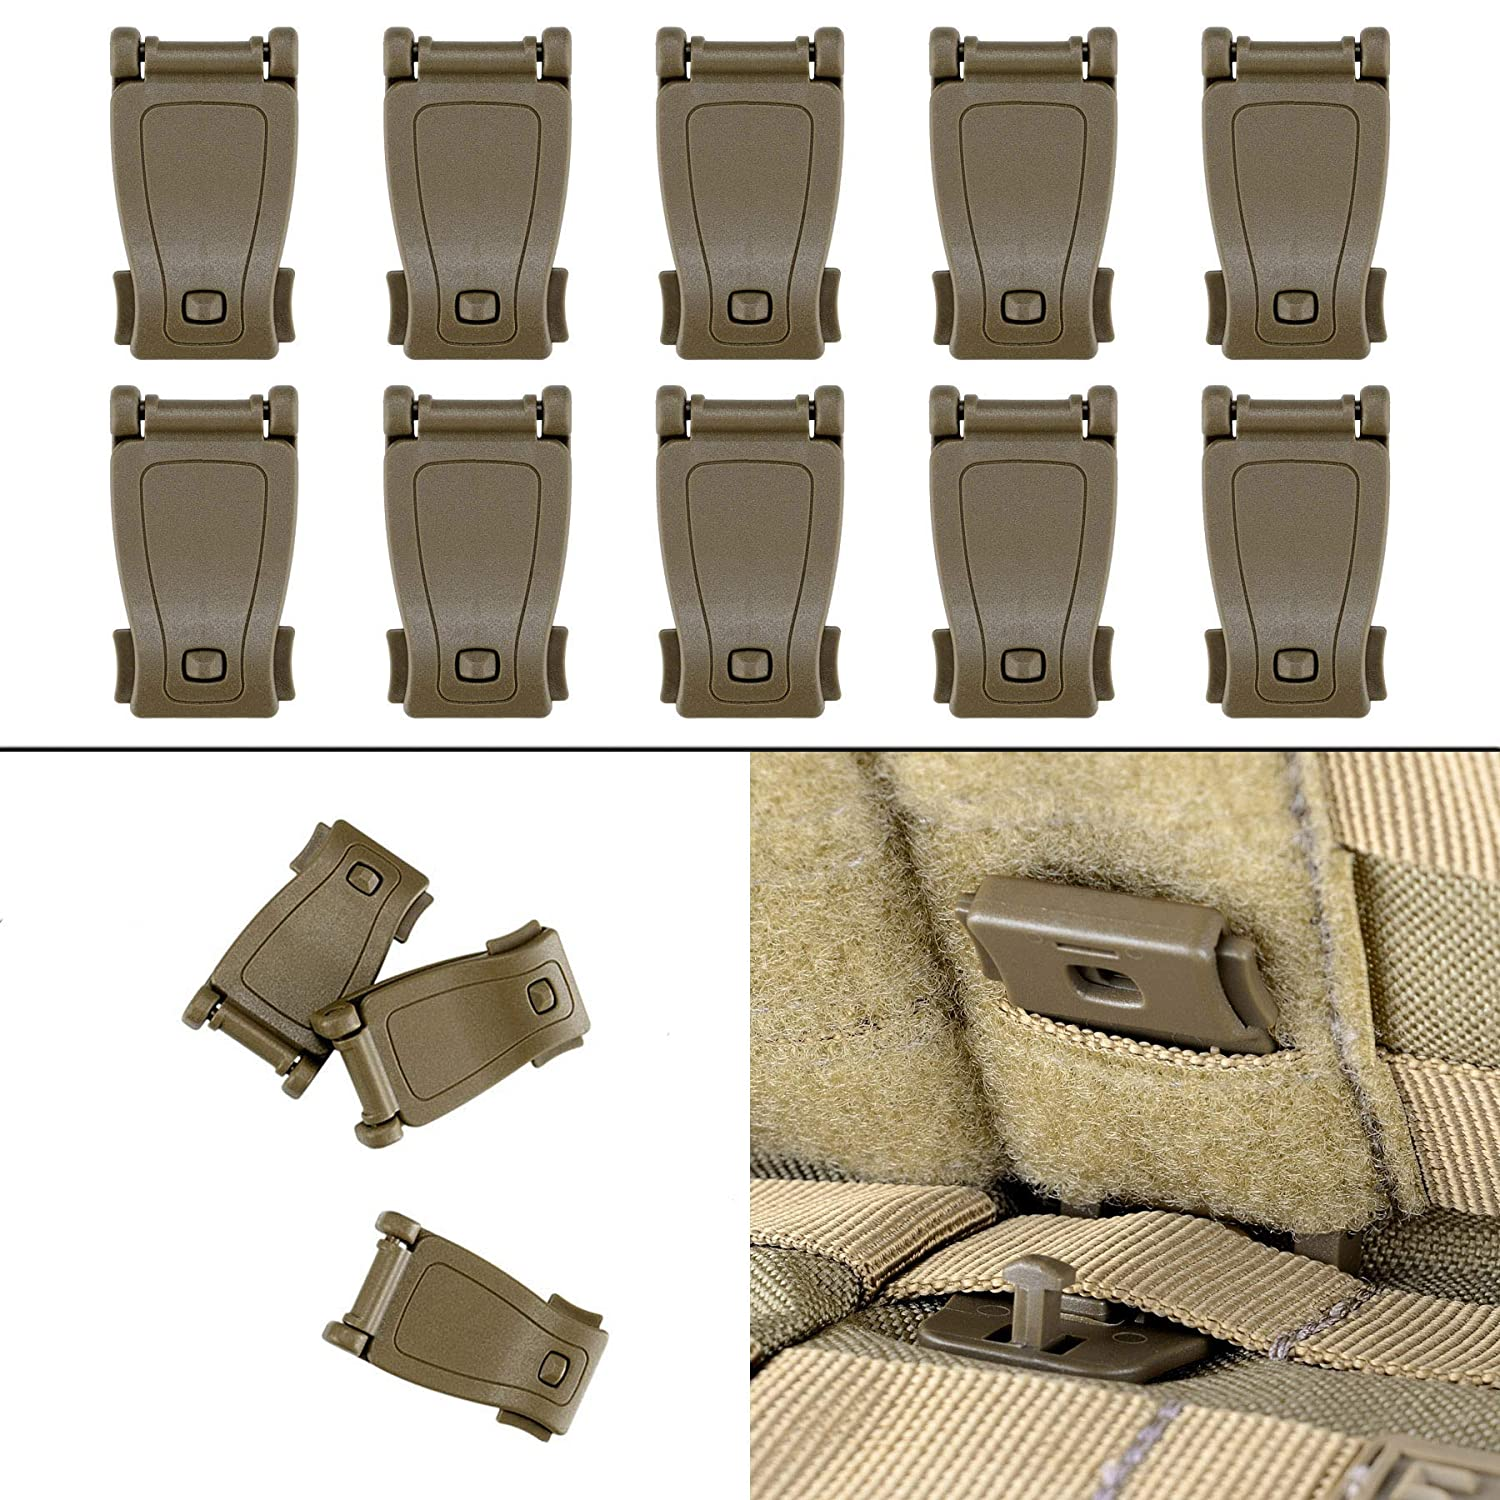 BOOSTEADY Kit of 30 Attachments for Molle Bag Tactical Backpack Vest Belt,D-Ring Grimloc Locking Gear Clip Web Dominator Elastic Strings Strap Management Tool Buckle